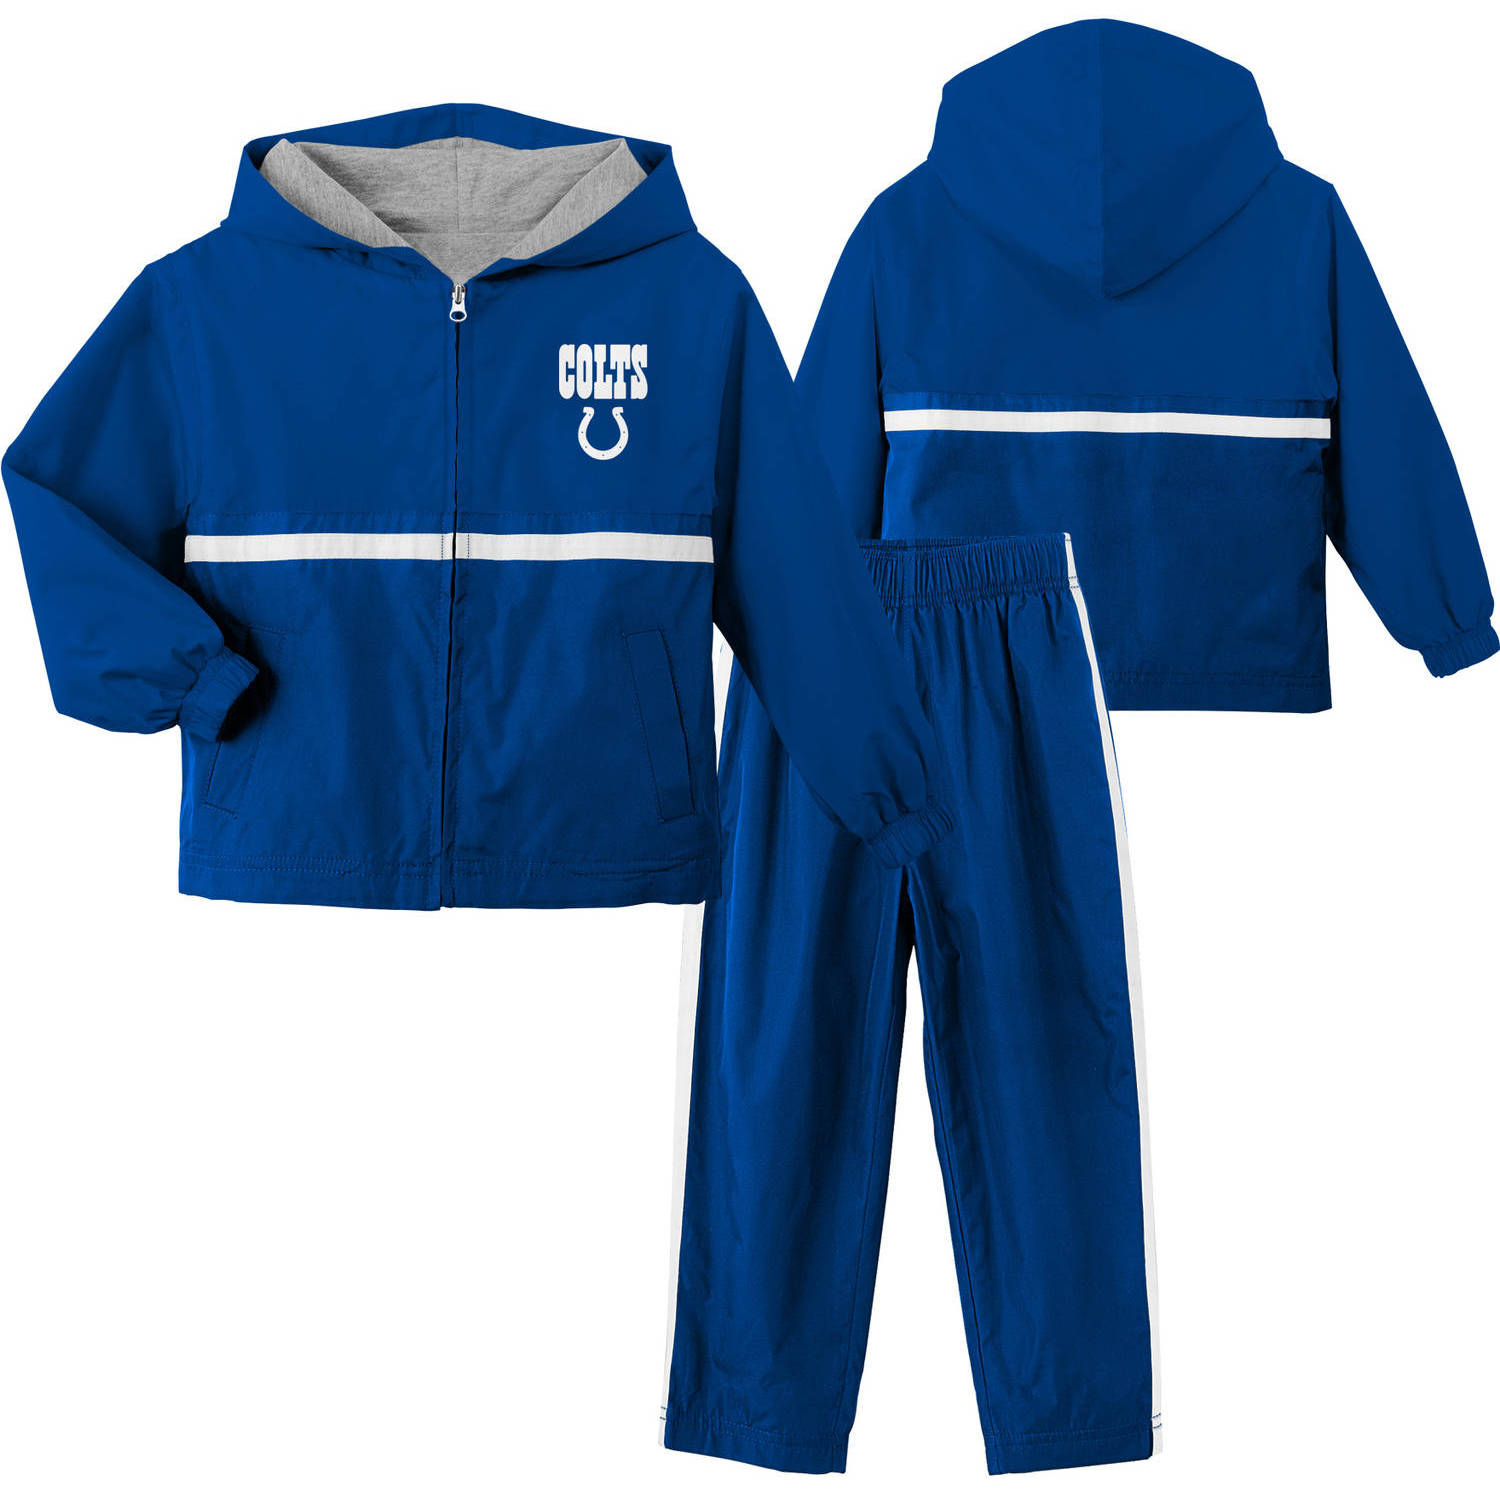 NFL Indianapolis Colts Toddler Windsuit